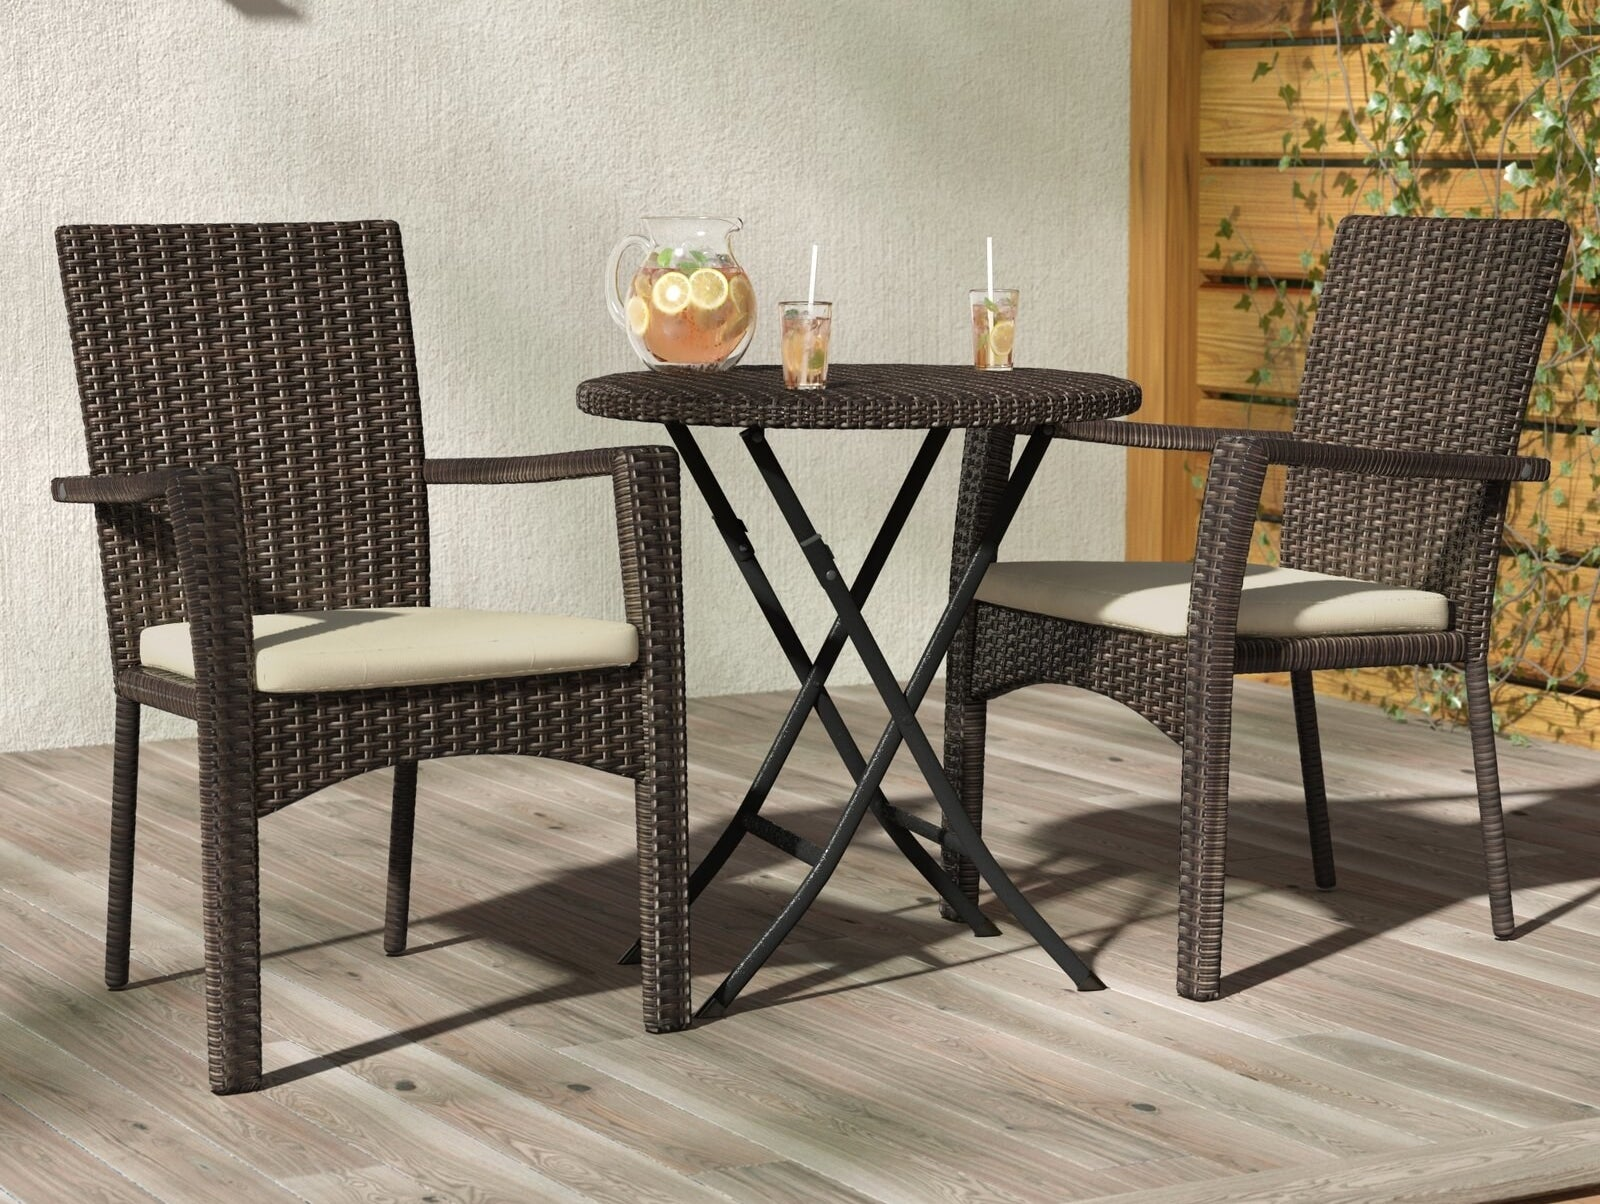 The brown wicker patio set